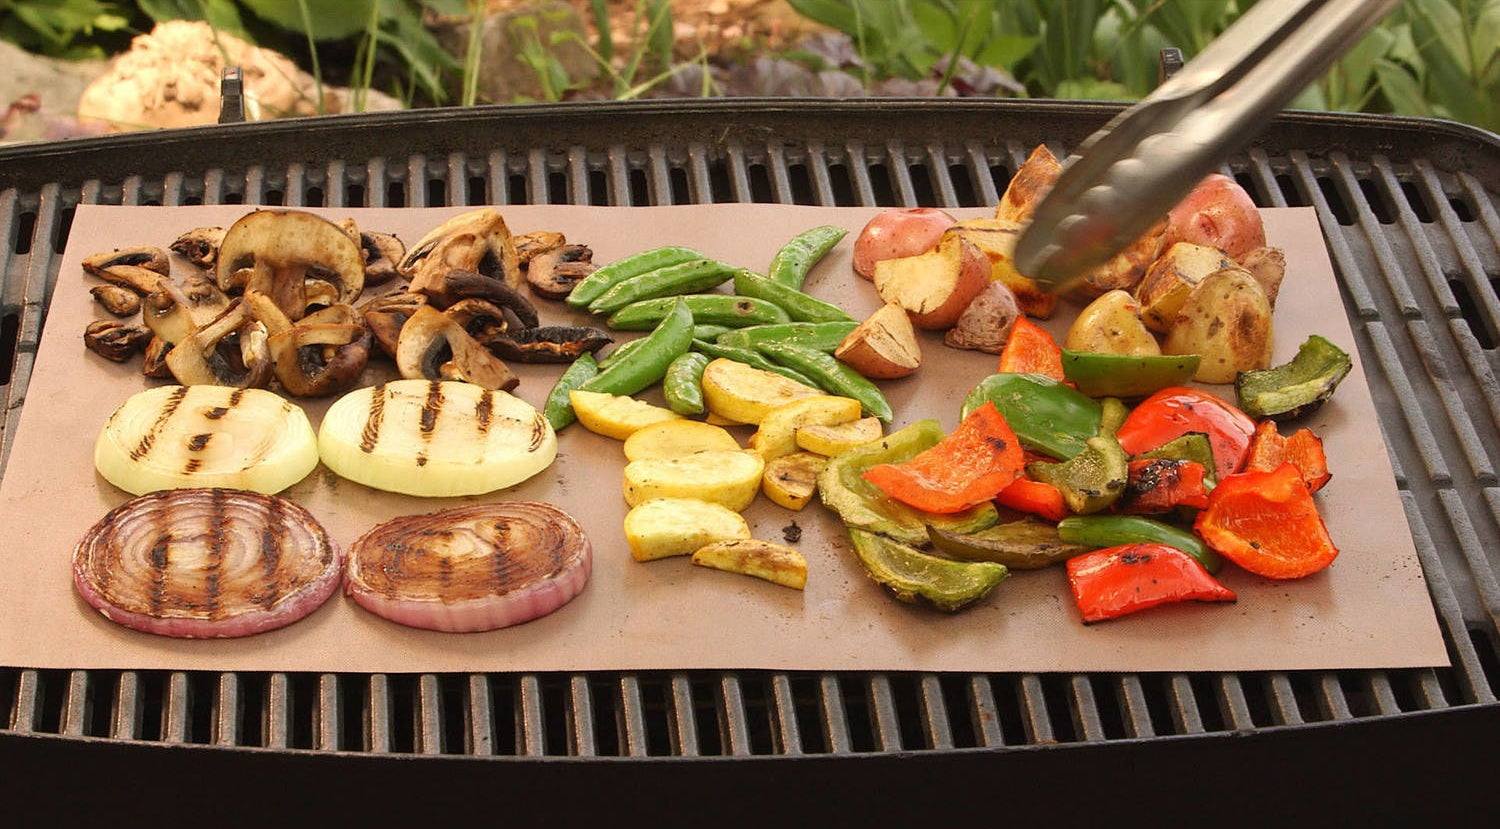 person grilling vetatables on a grill with yoshi copper grill mat on top